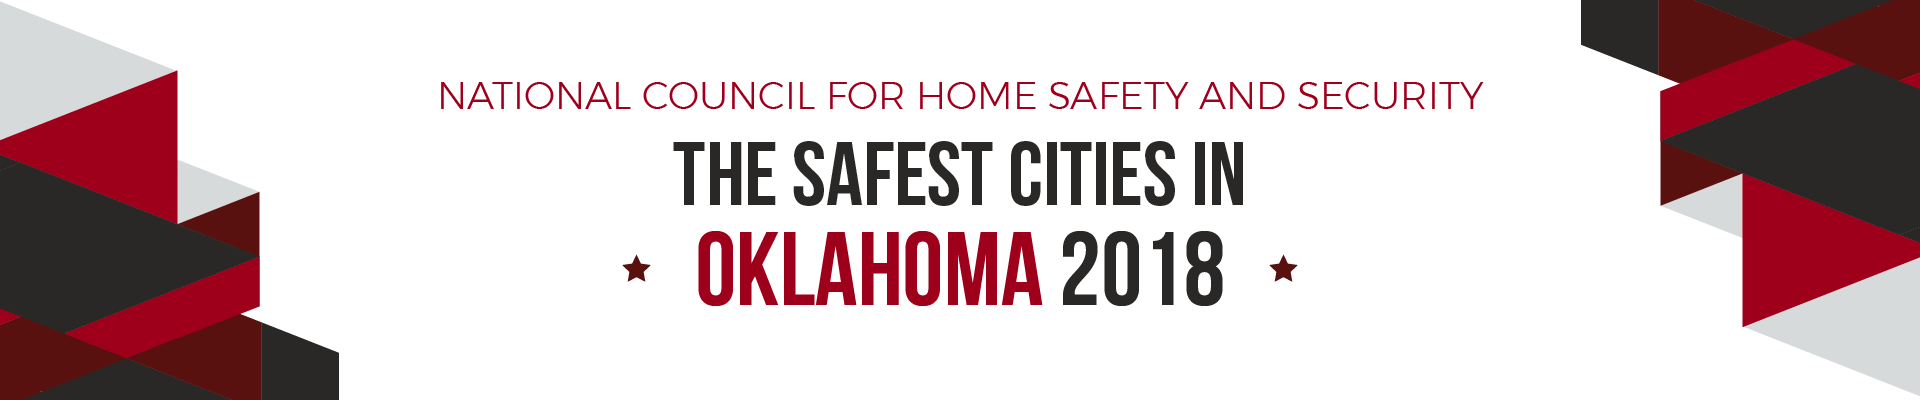 safe cities oklahoma 2018